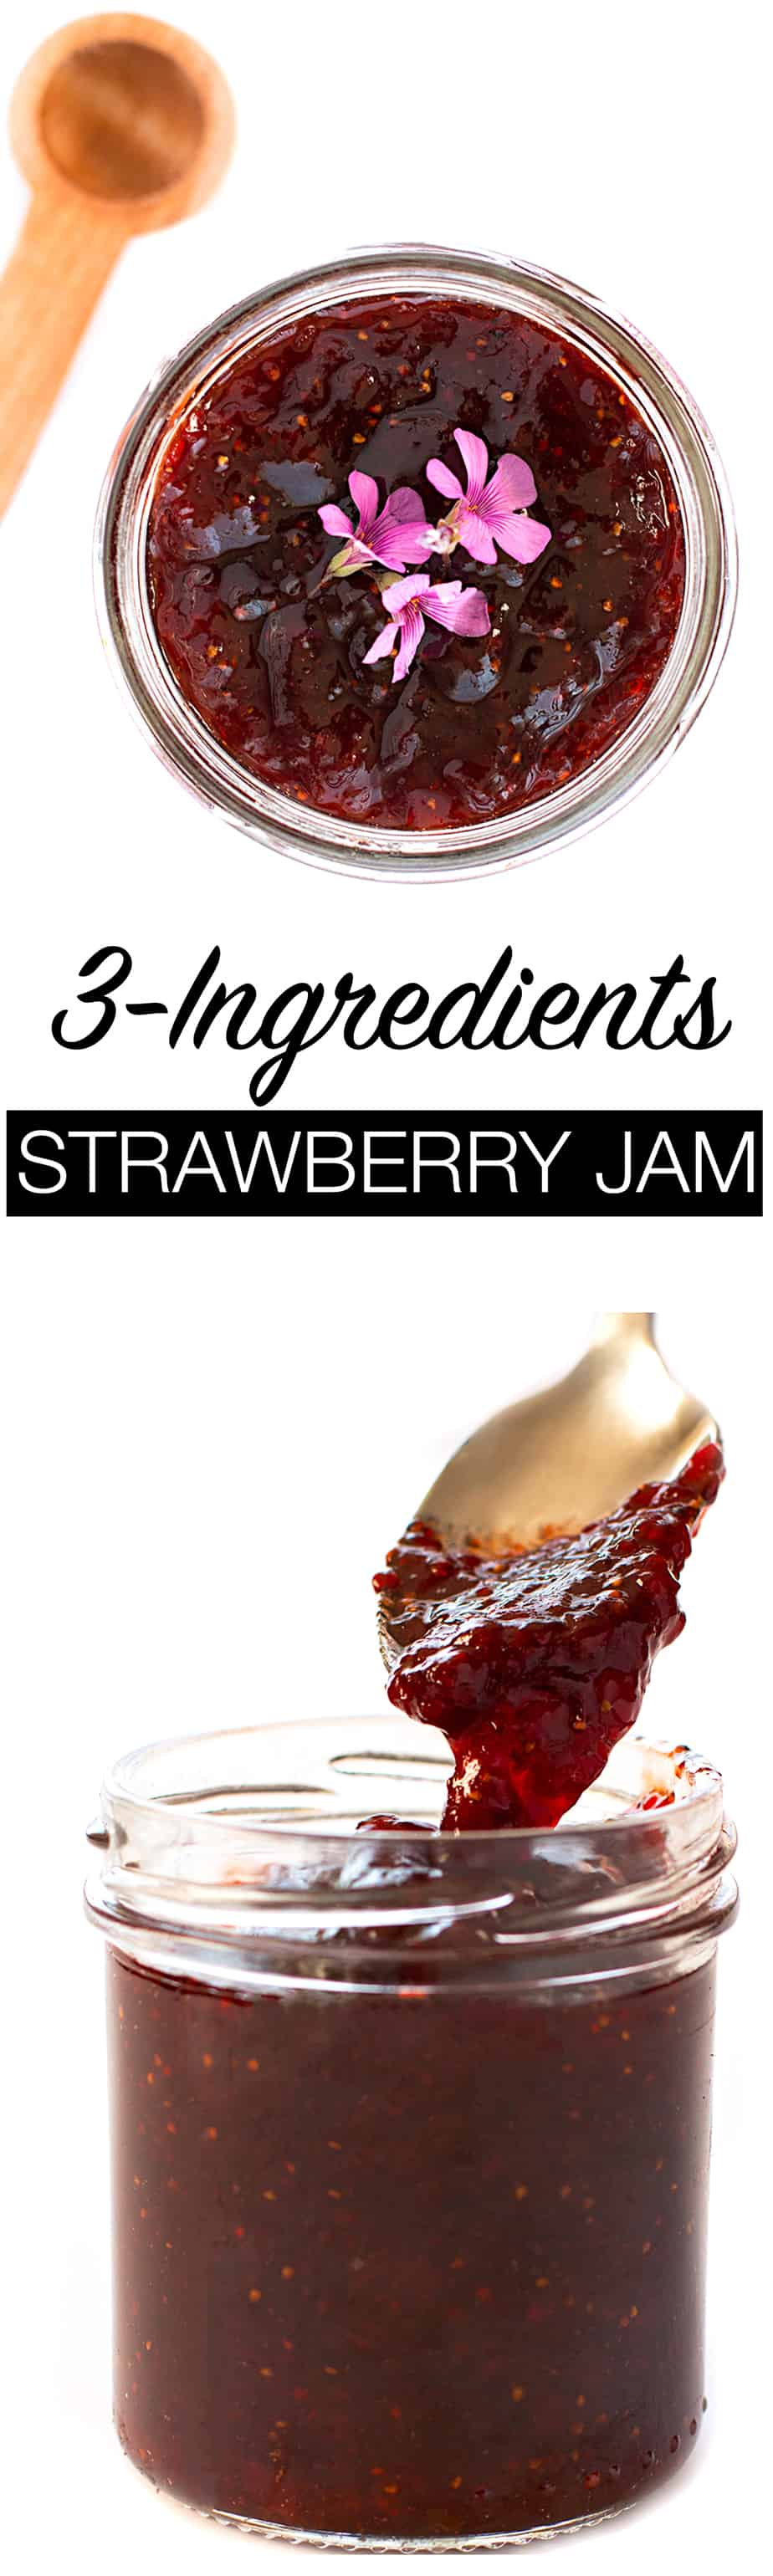 strawberry-jam-recipe-pinterest